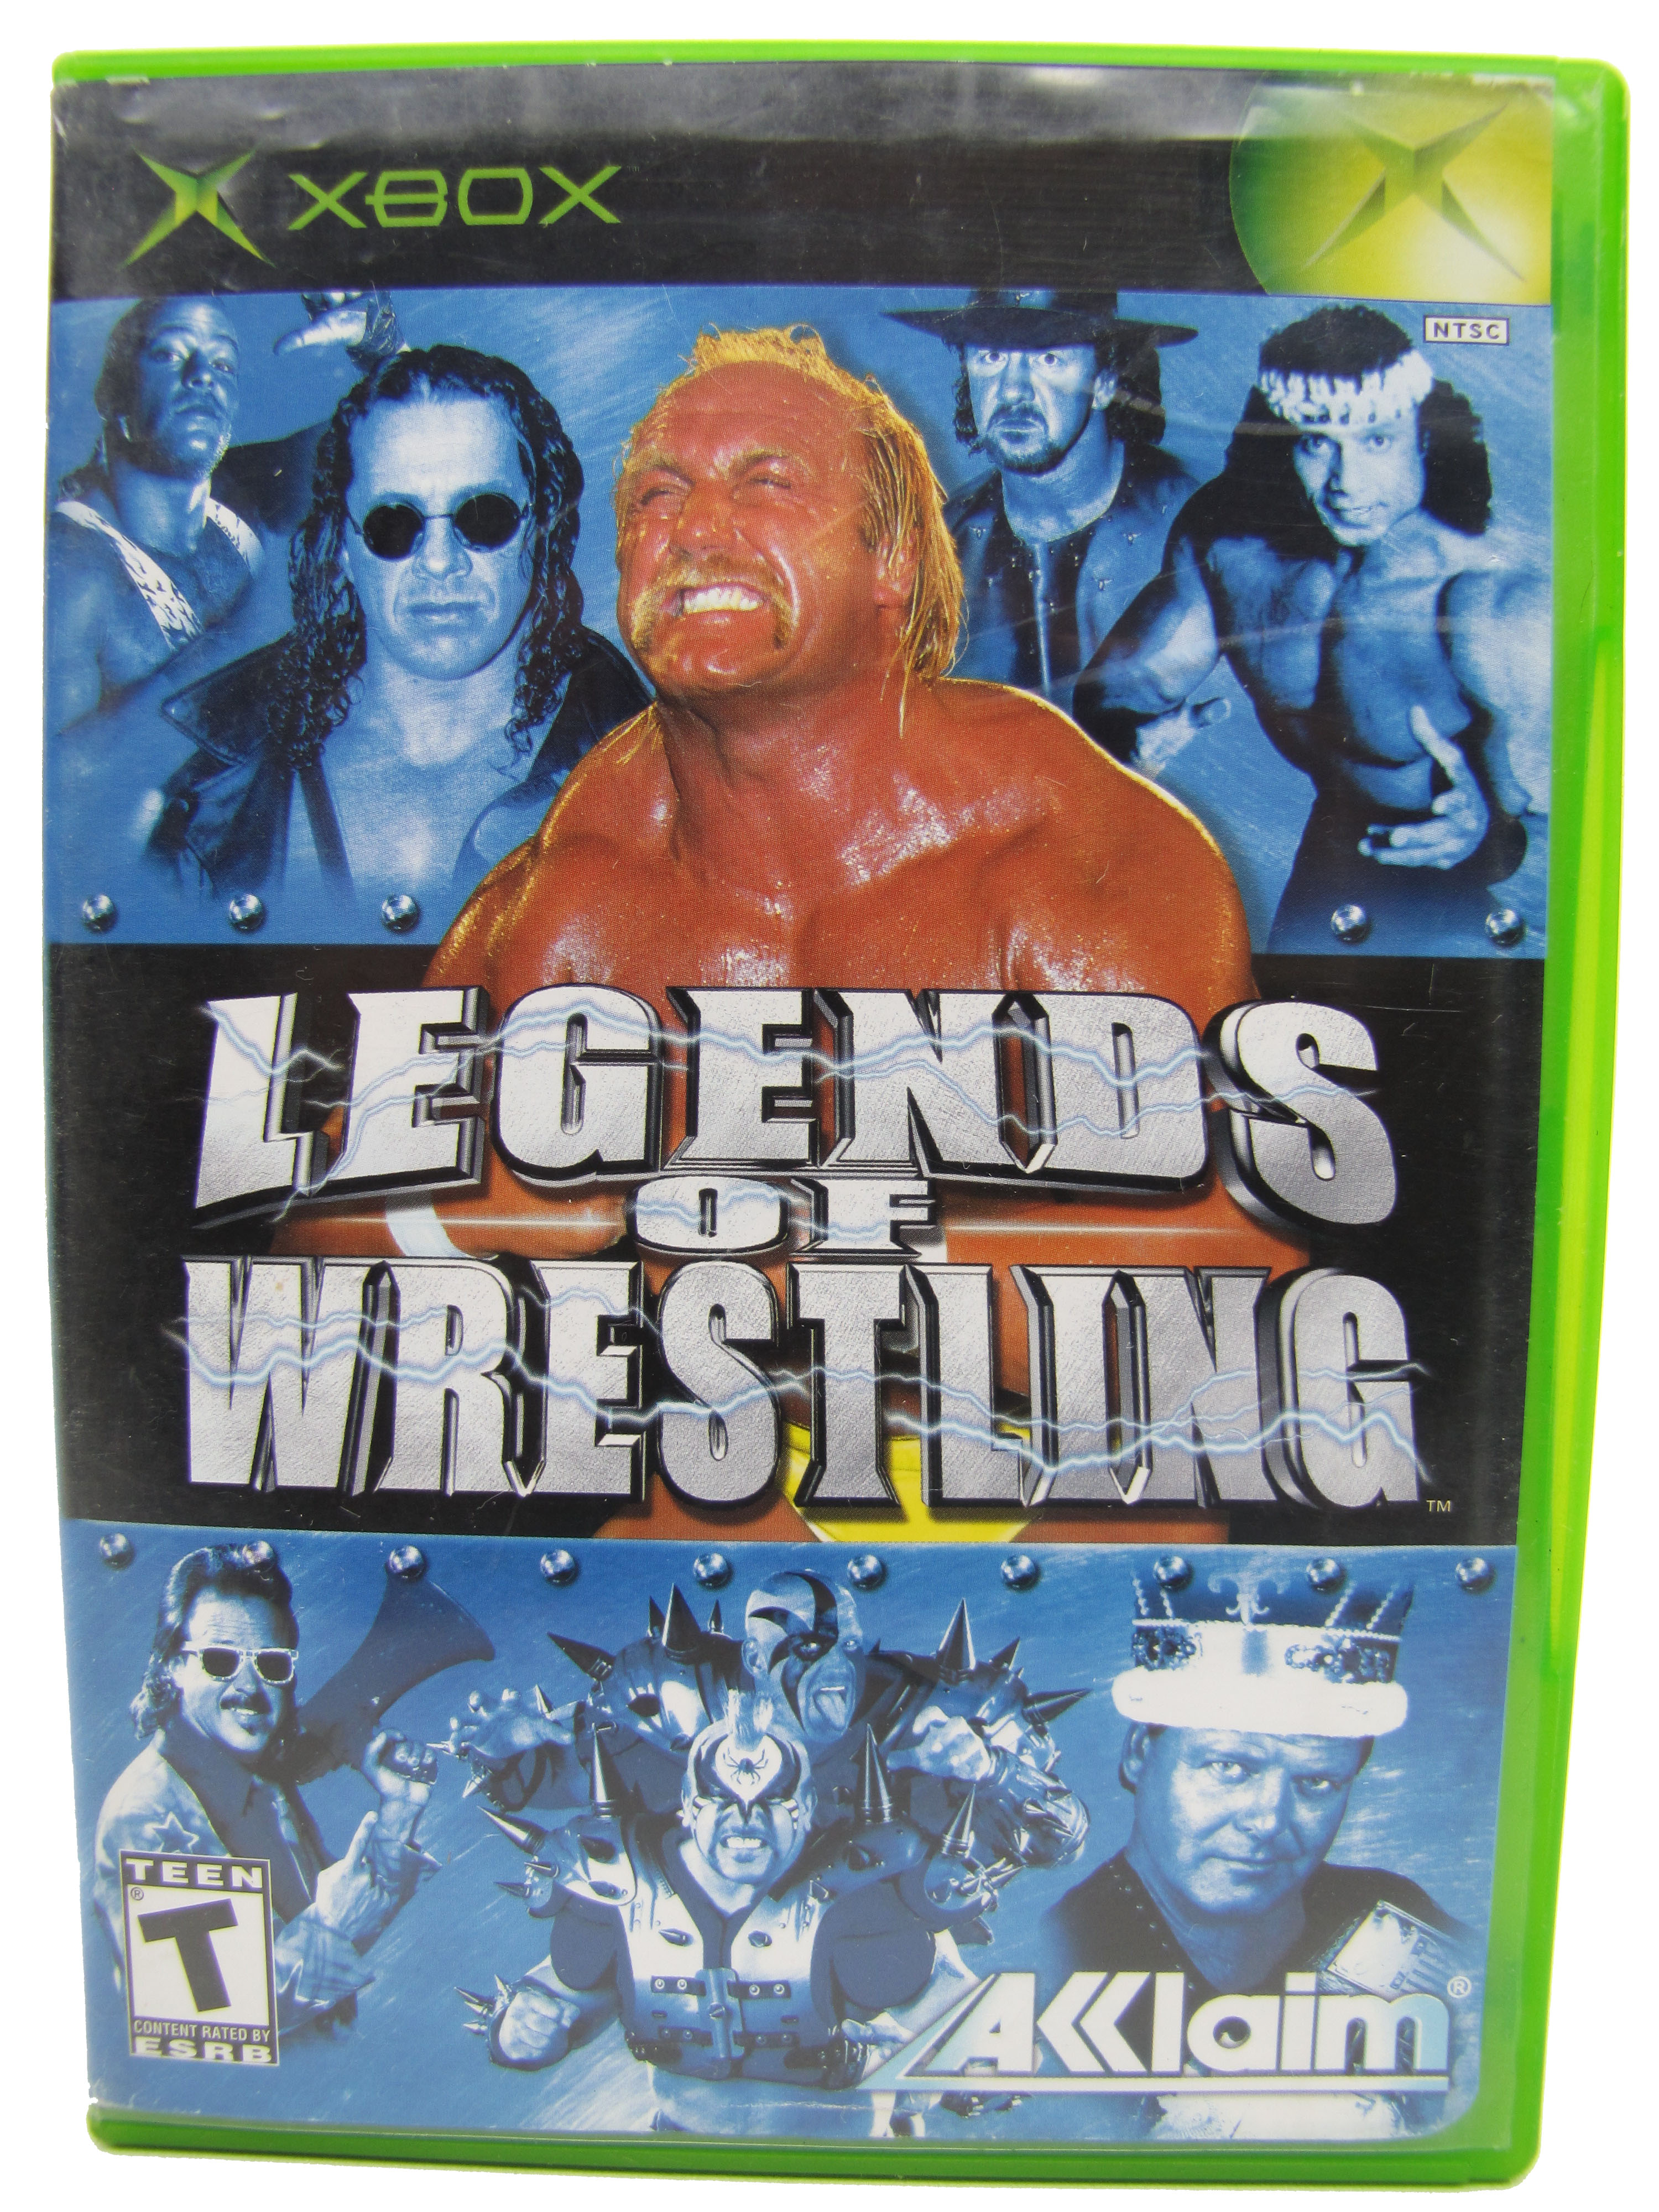 XBOX WWF Legends of Wrestling Complete - 2002